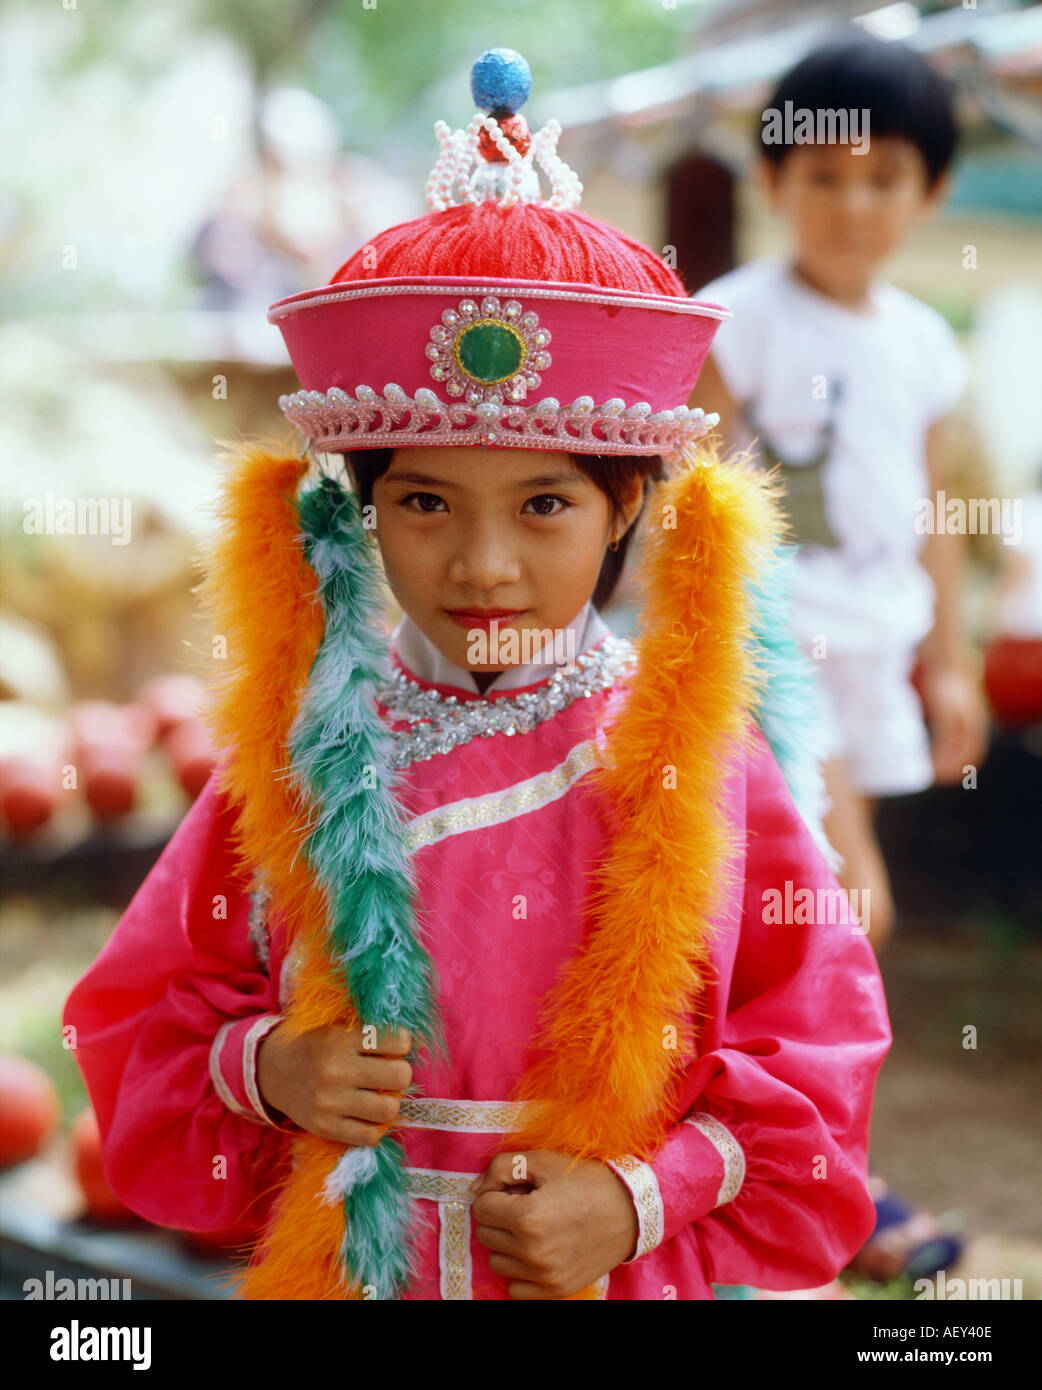 Girl In National Costume Singapore Stock Photo 2569229 Alamy